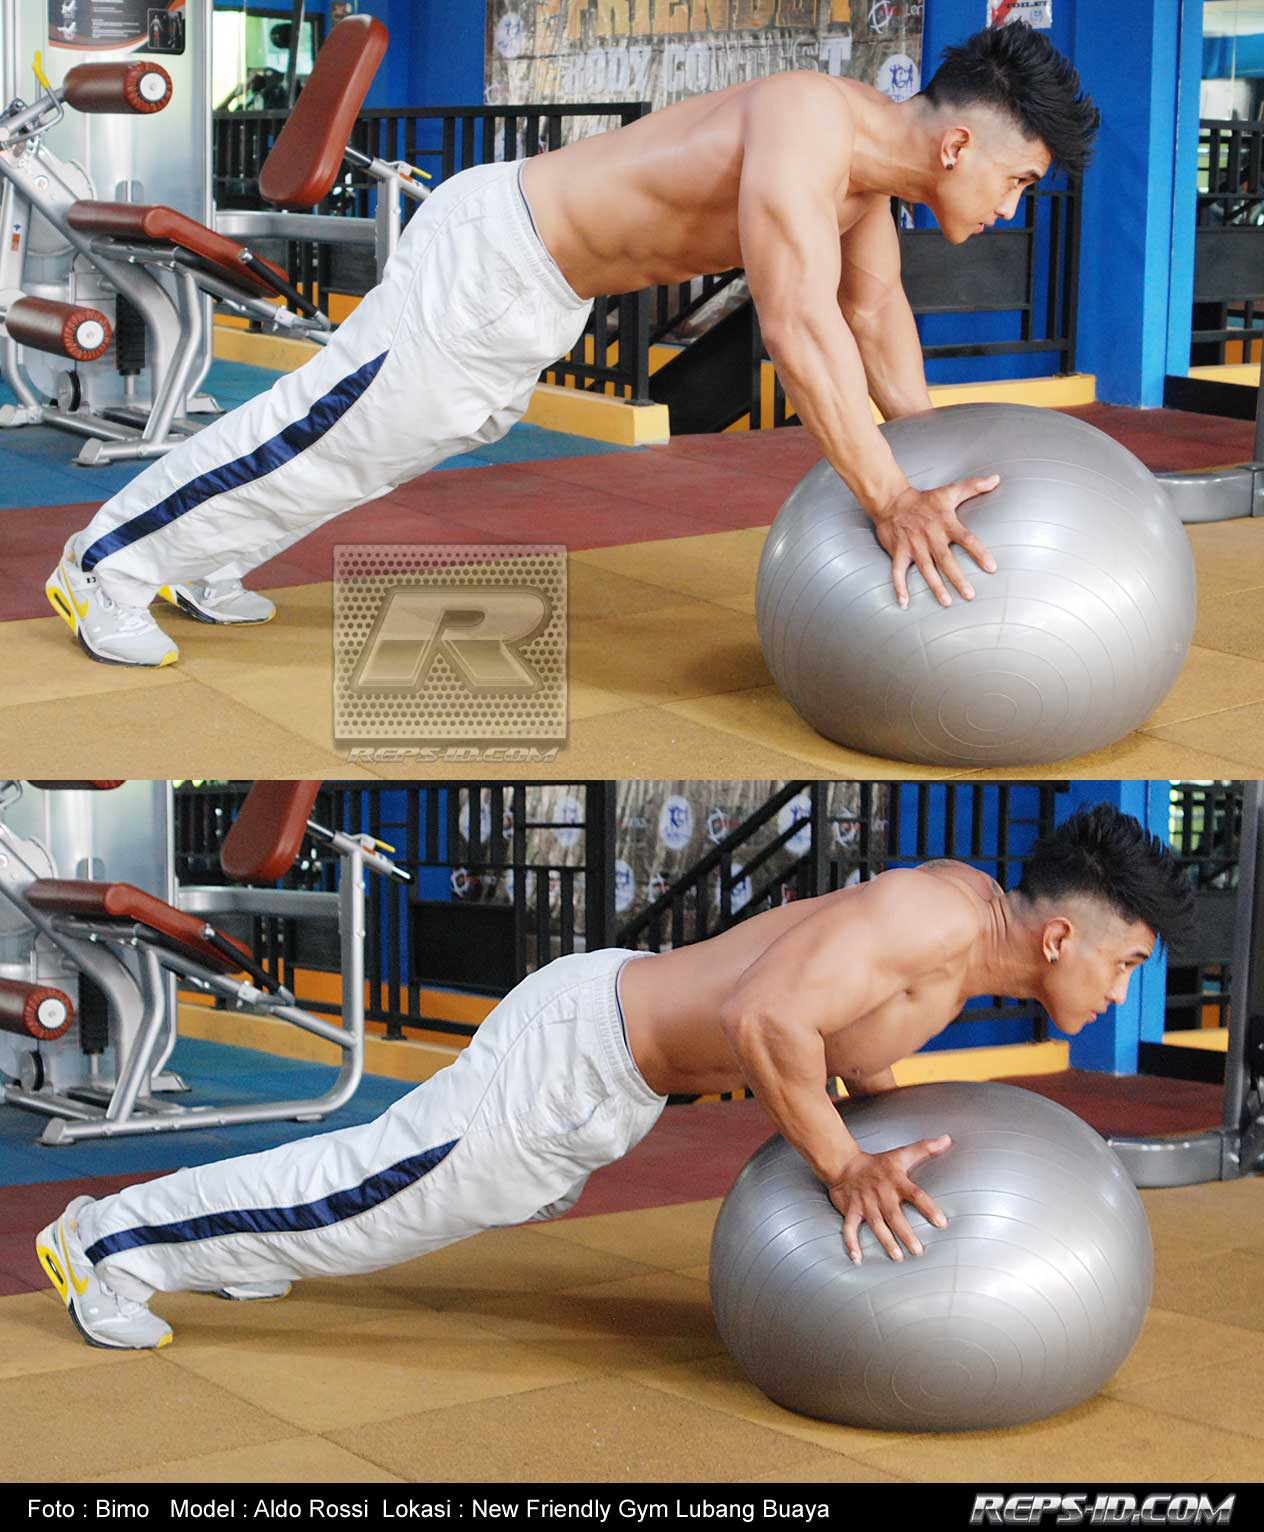 CHEST BOUNCE HOLD